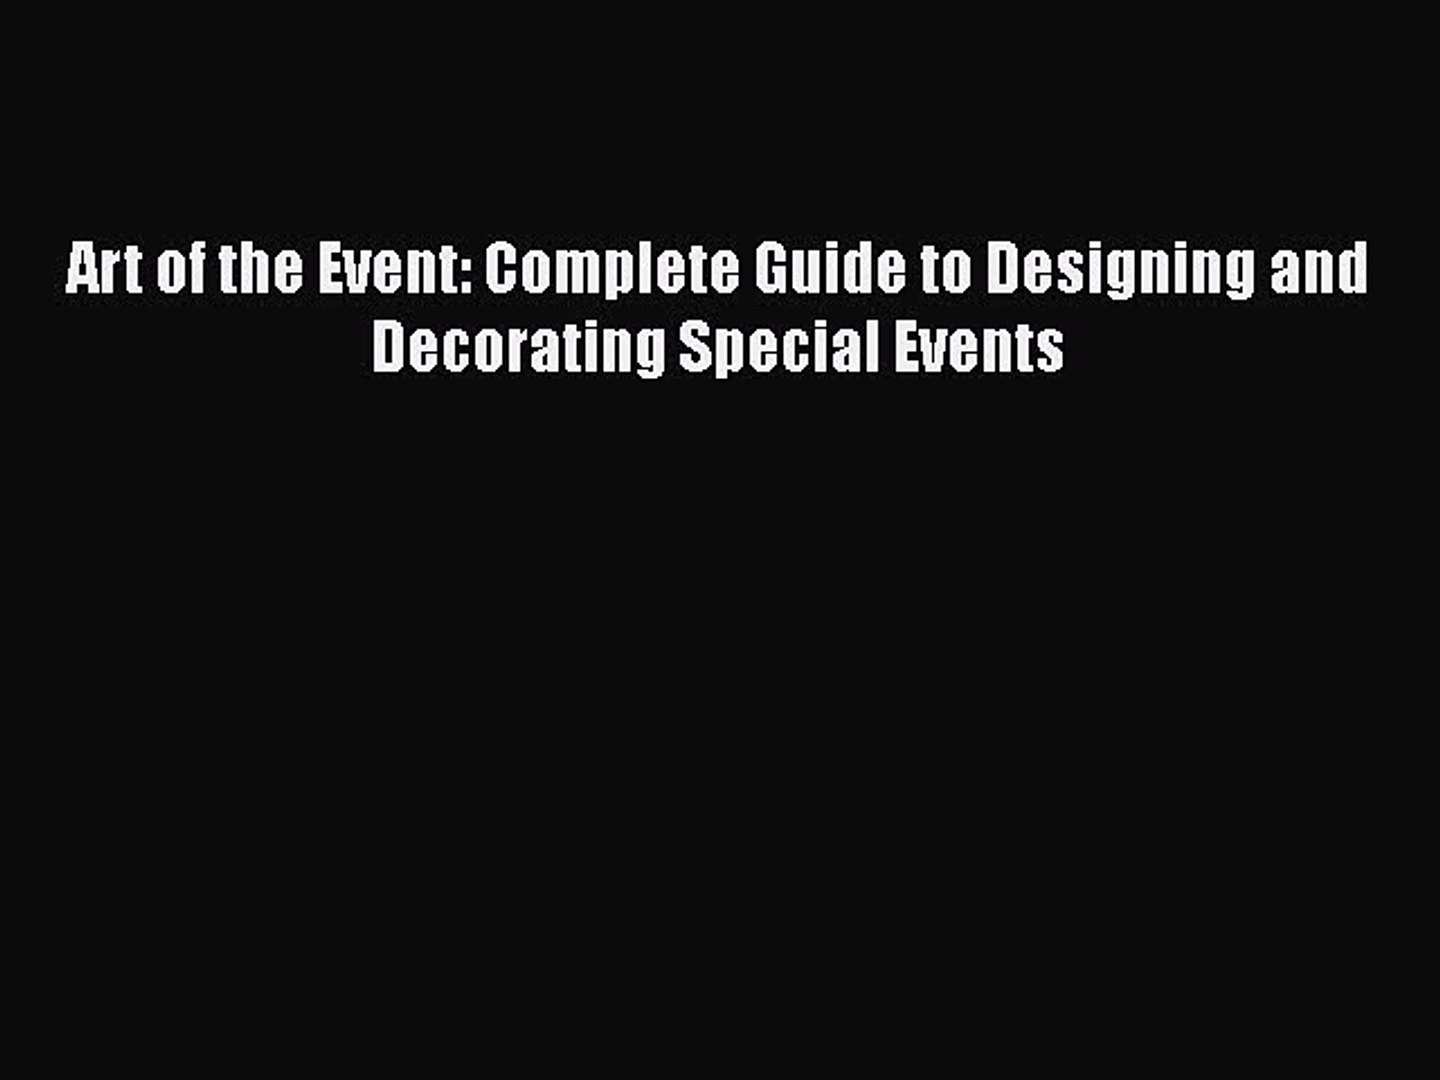 [PDF Download] Art of the Event: Complete Guide to Designing and Decorating Special Events